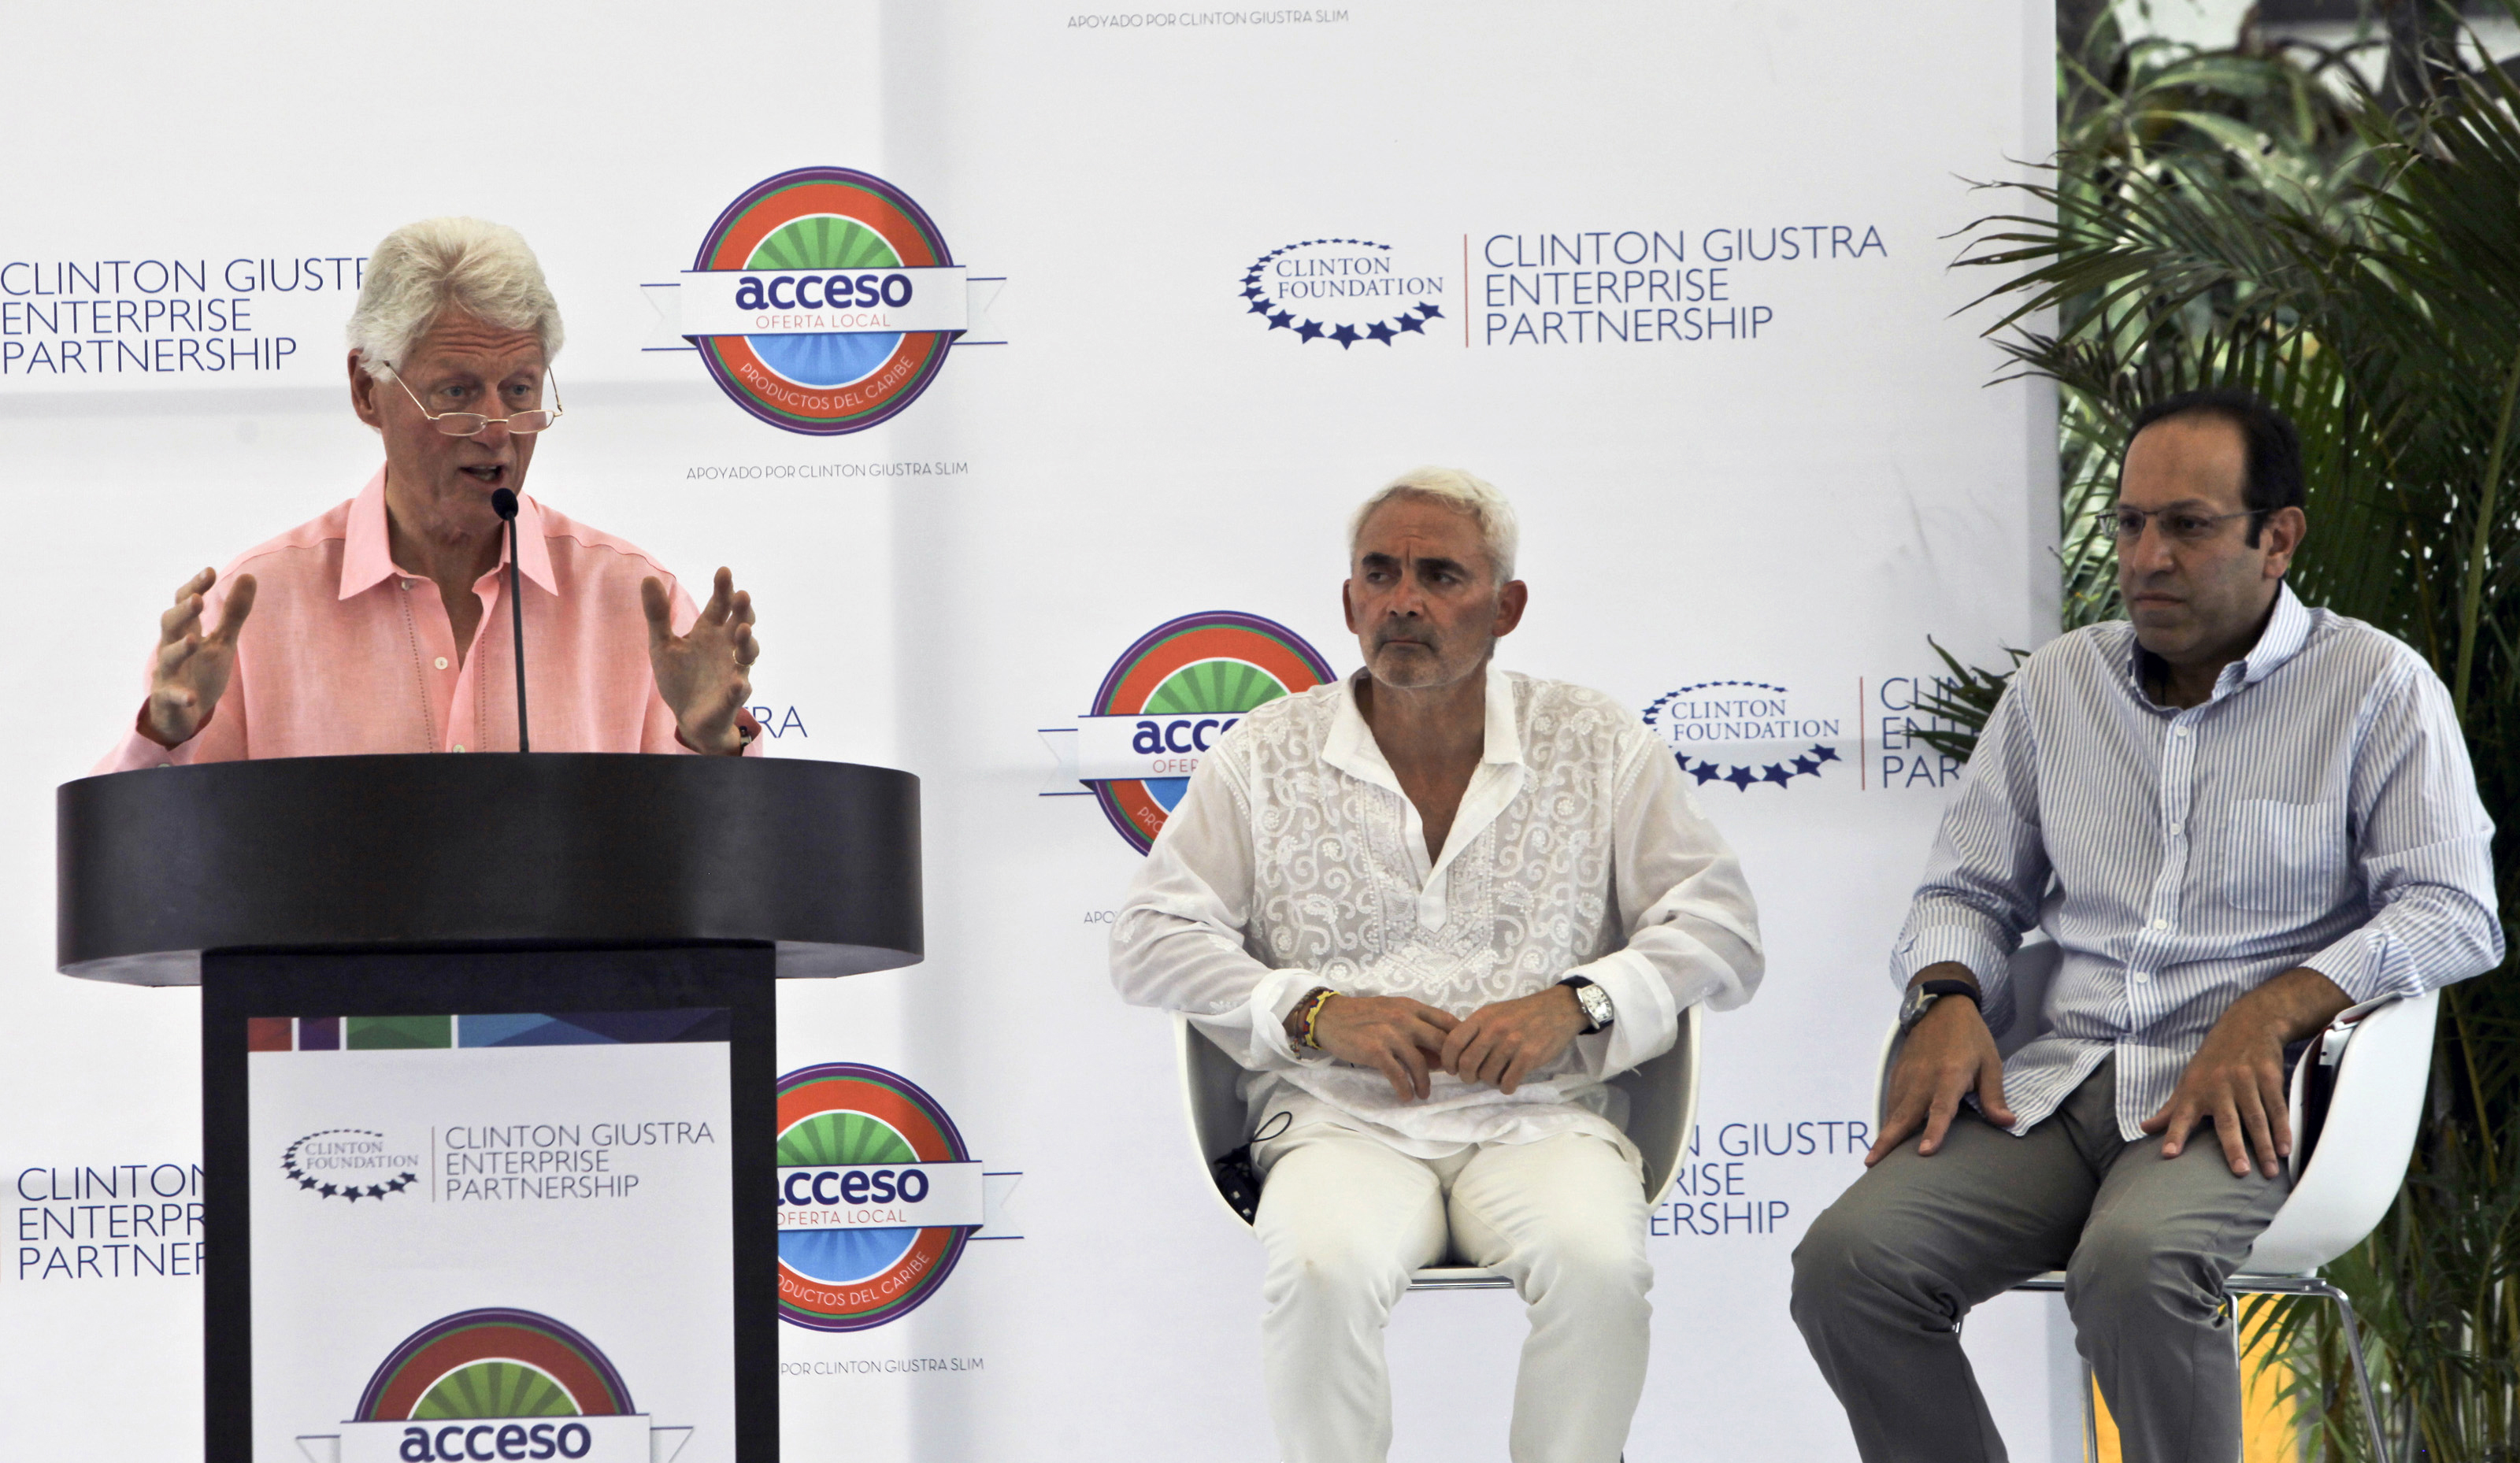 Former US President Bill Clinton (L) speaks next to Canadian philantropist Frank Giustra (C) and Mexican businessman Marco Slim, during the innauguration ceremony of the Acceso Oferta Local Food Company in Cartagena, Colombia on May 15, 2013.  This new company is the result of Colombian entrepreneours in the food industry with the support of the Clinton Giustra Enterprise Partnership. AFP PHOTO/Joaquin Sarmiento        (Photo credit should read Joaquin SARMIENTO/AFP/Getty Images)